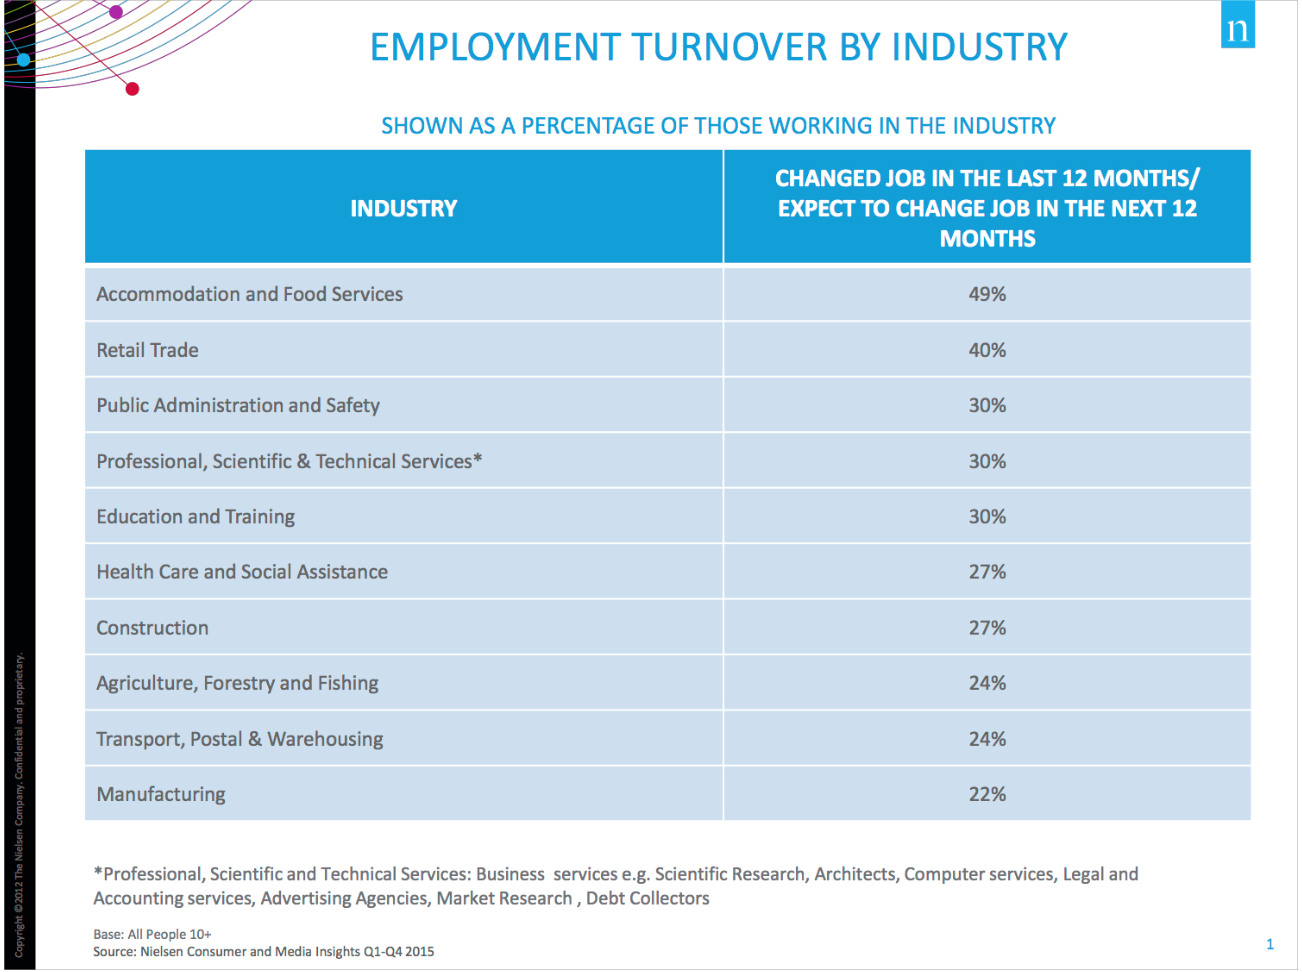 employment turnover by industry